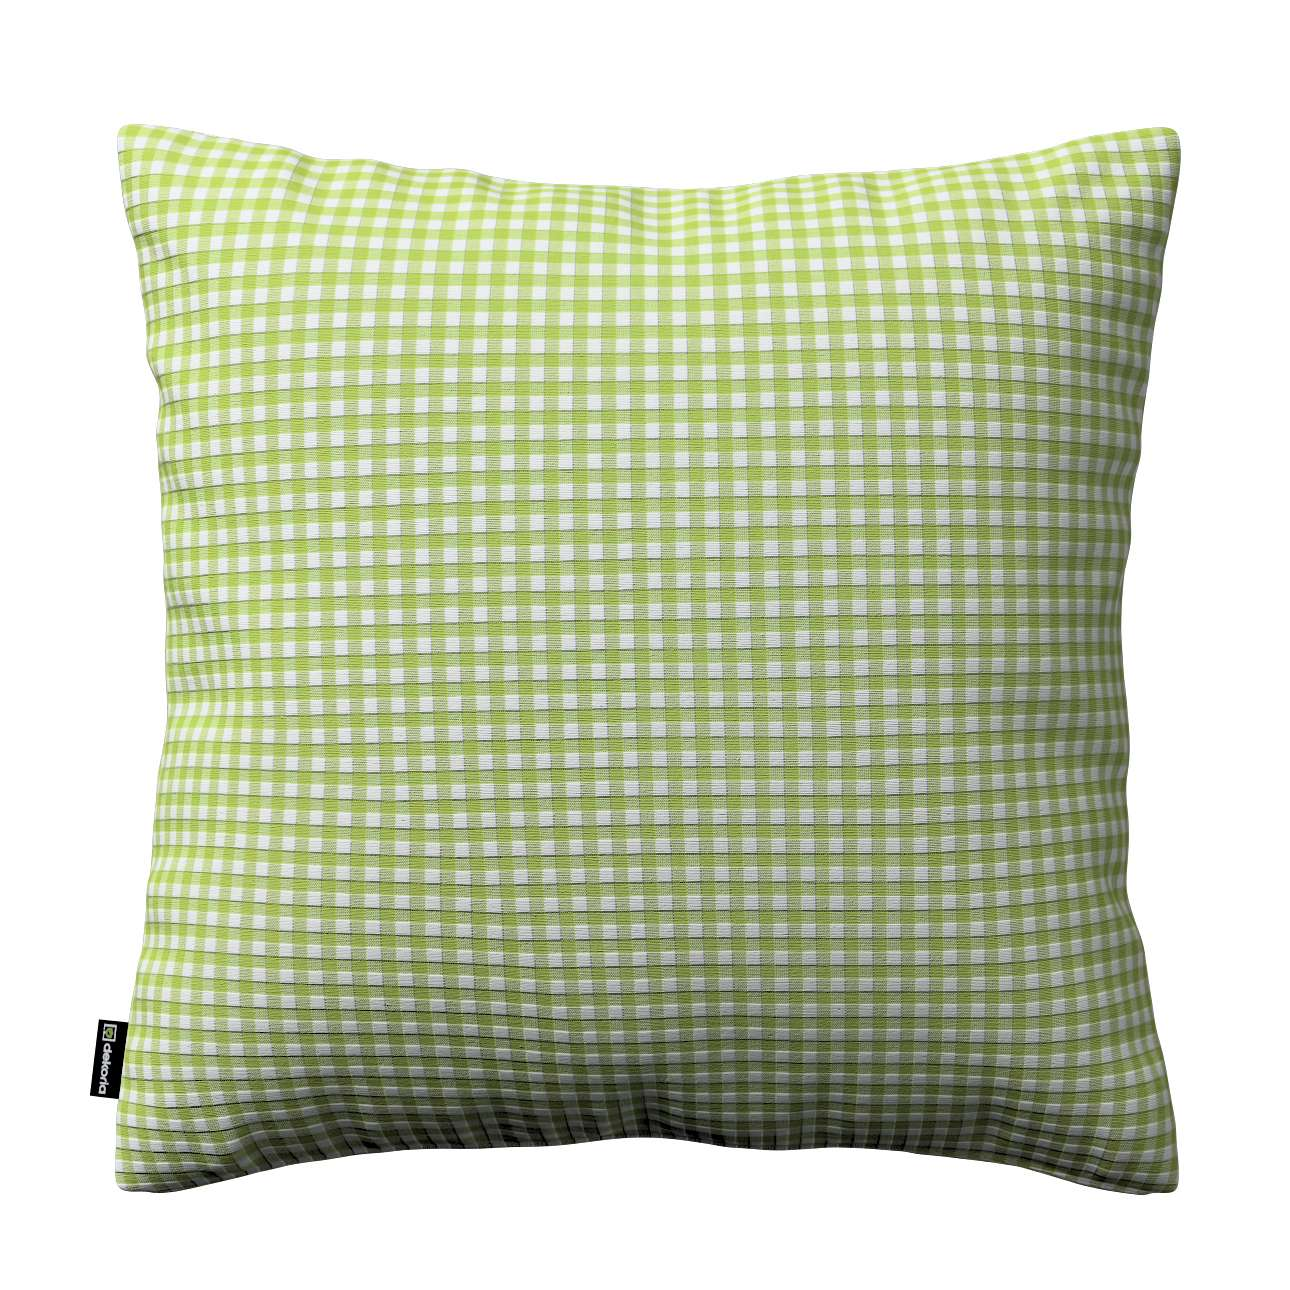 Kinga cushion cover 43 x 43 cm (17 x 17 inch) in collection Quadro, fabric: 136-33